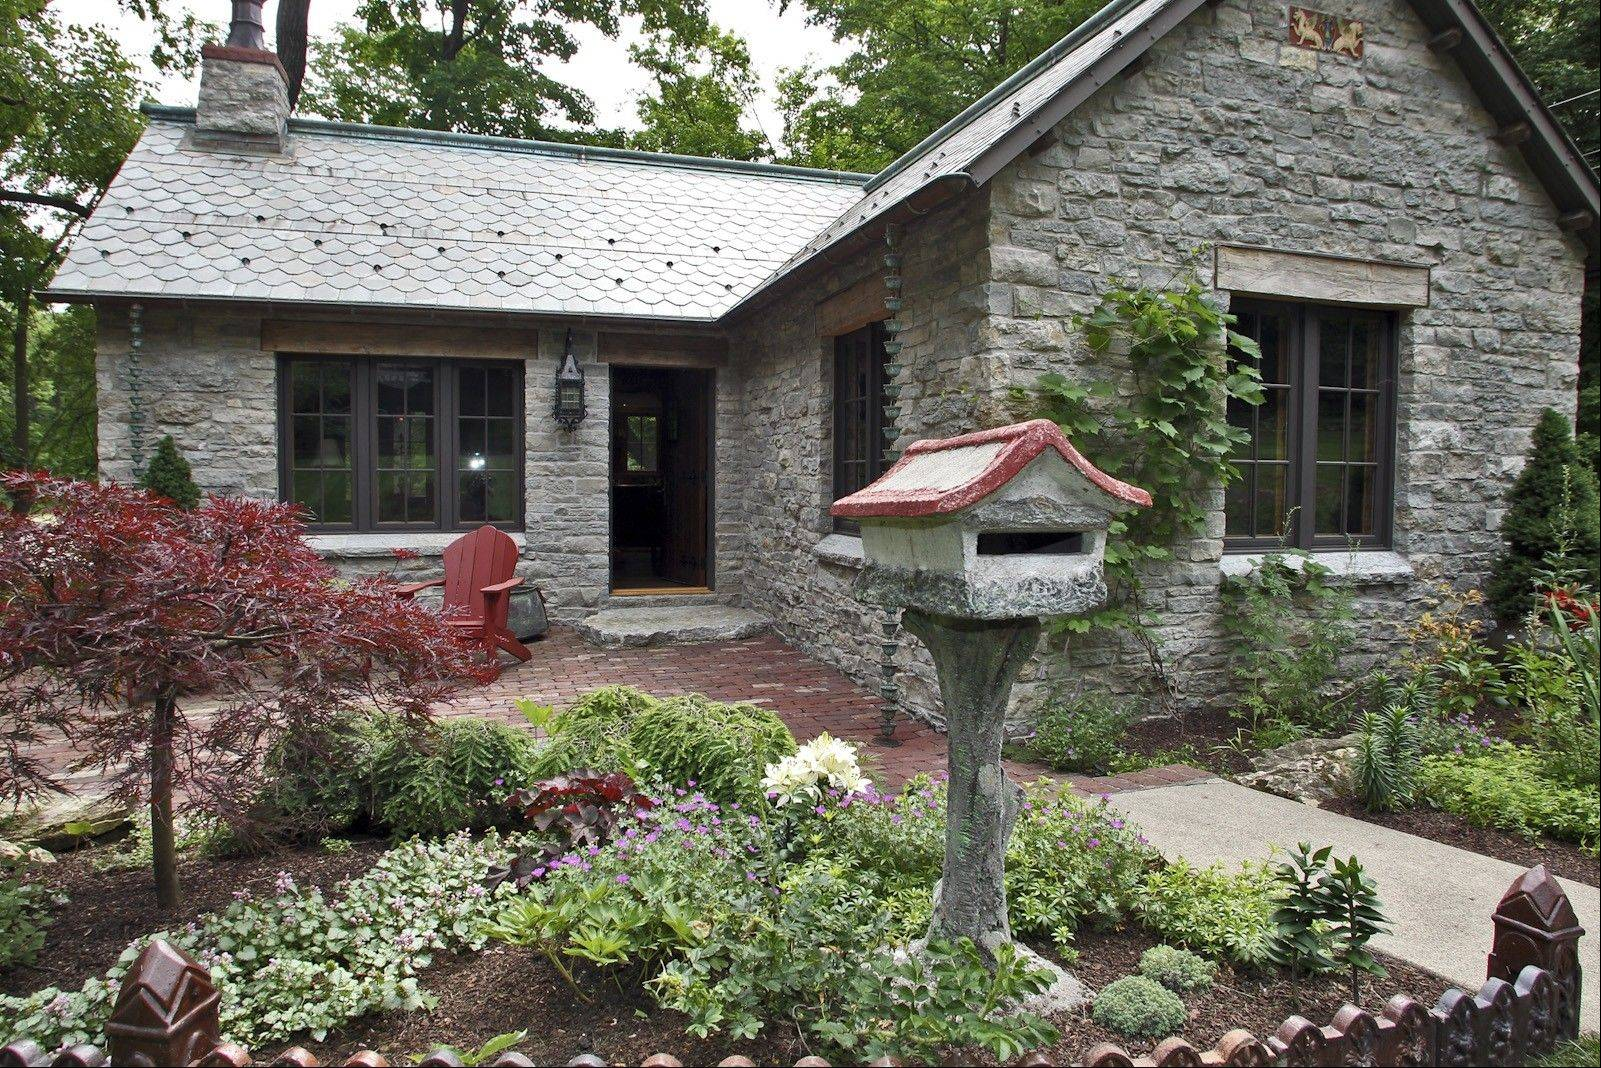 Both the slate roof and Platteville limestone used for exterior walls of the newly renovated cottage were salvaged from other buildings.